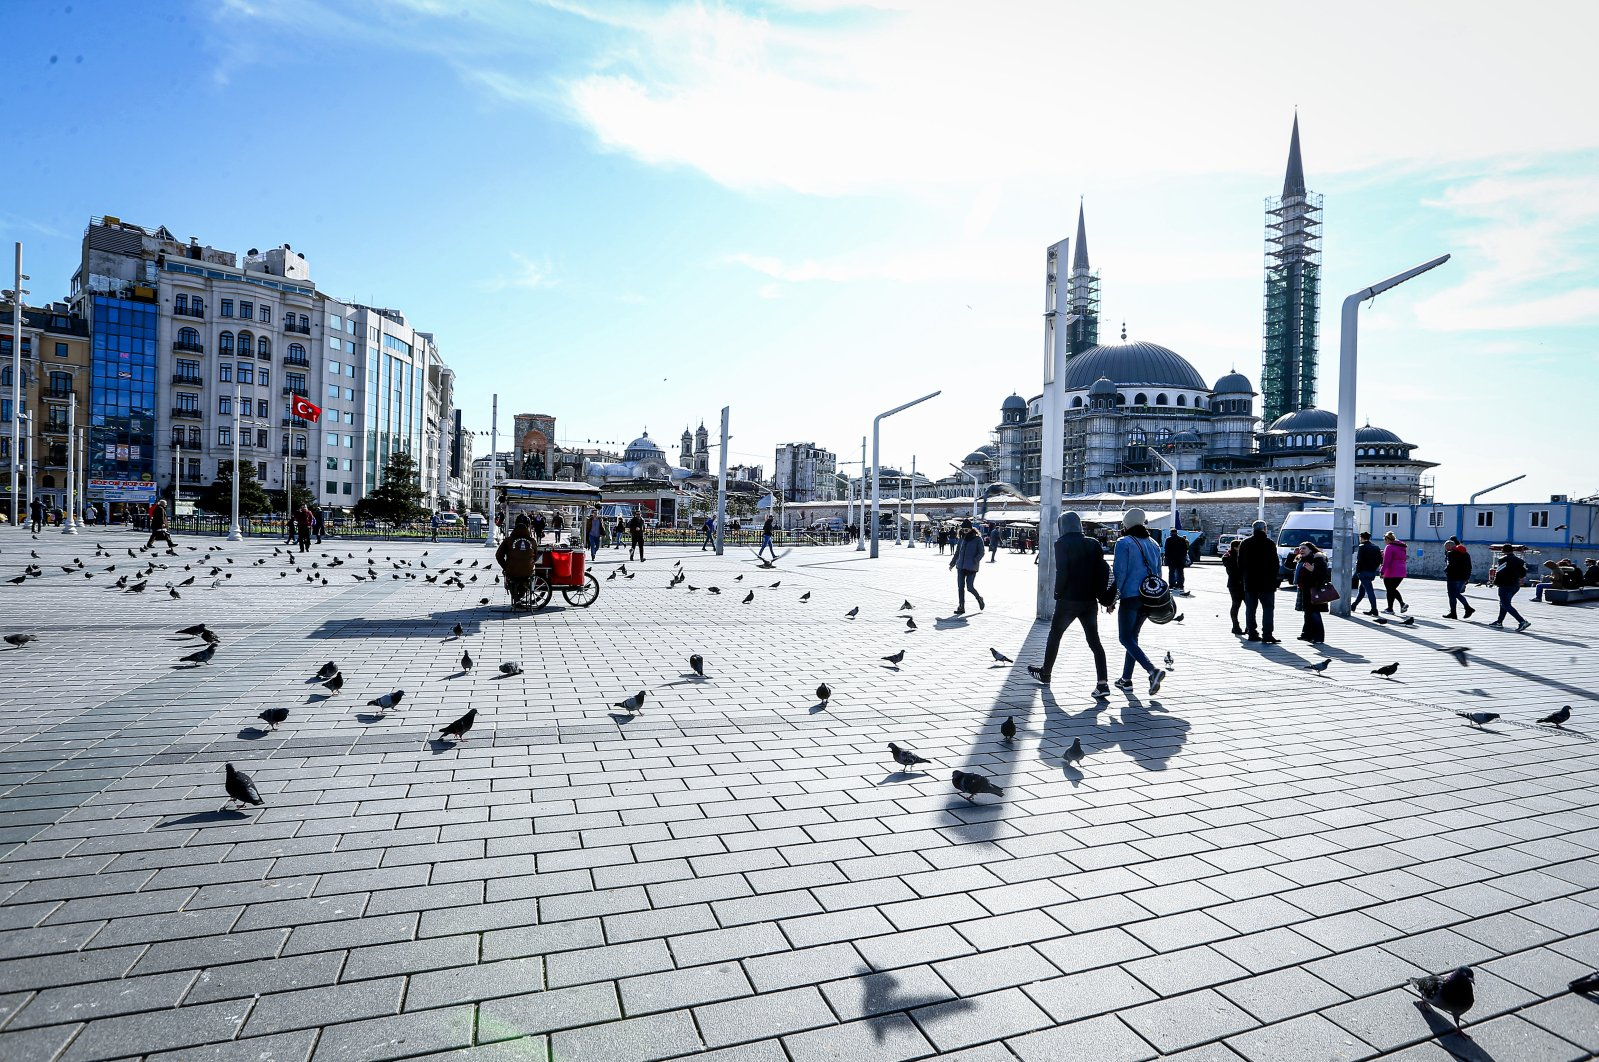 People are seen walking at Taksim Square in Istanbul, Turkey, March 17, 2020. (AA Photo)